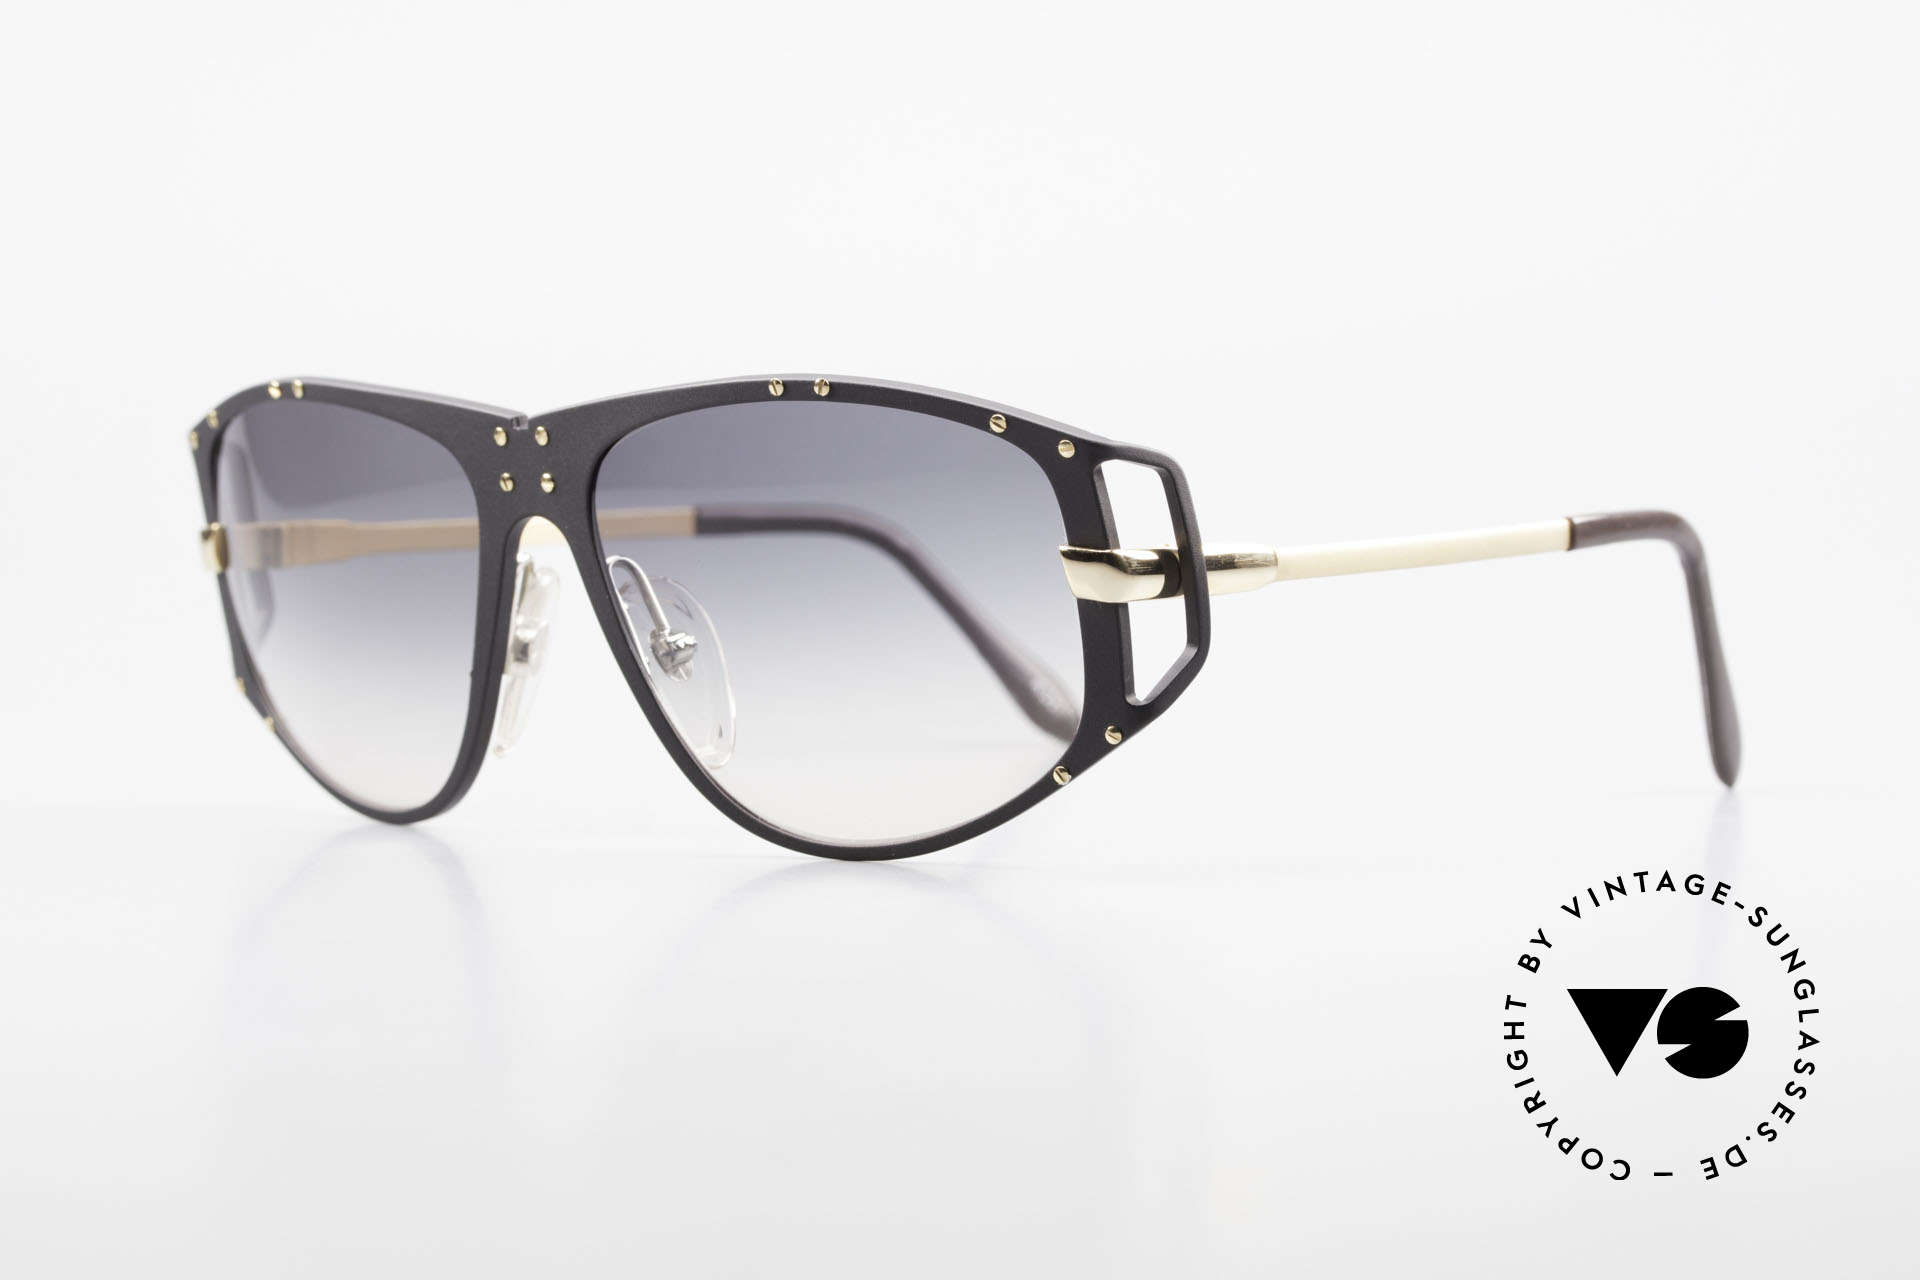 Alpina A51 Ultra Rare 90's XL Sunglasses, made with the same components; handmade quality, Made for Men and Women